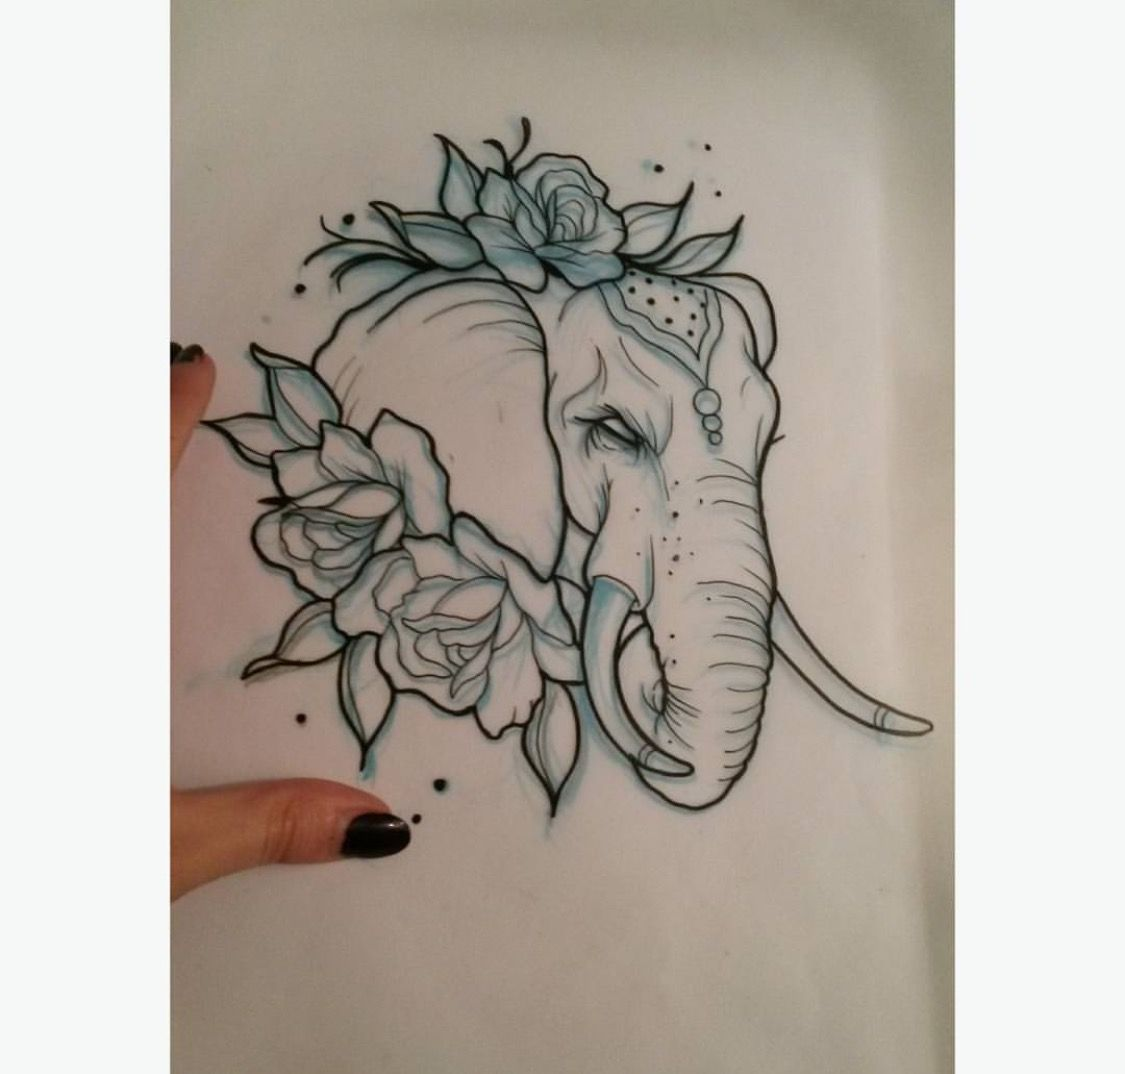 Pin by phoebe lynk on tattoos pinterest tattoo piercings and